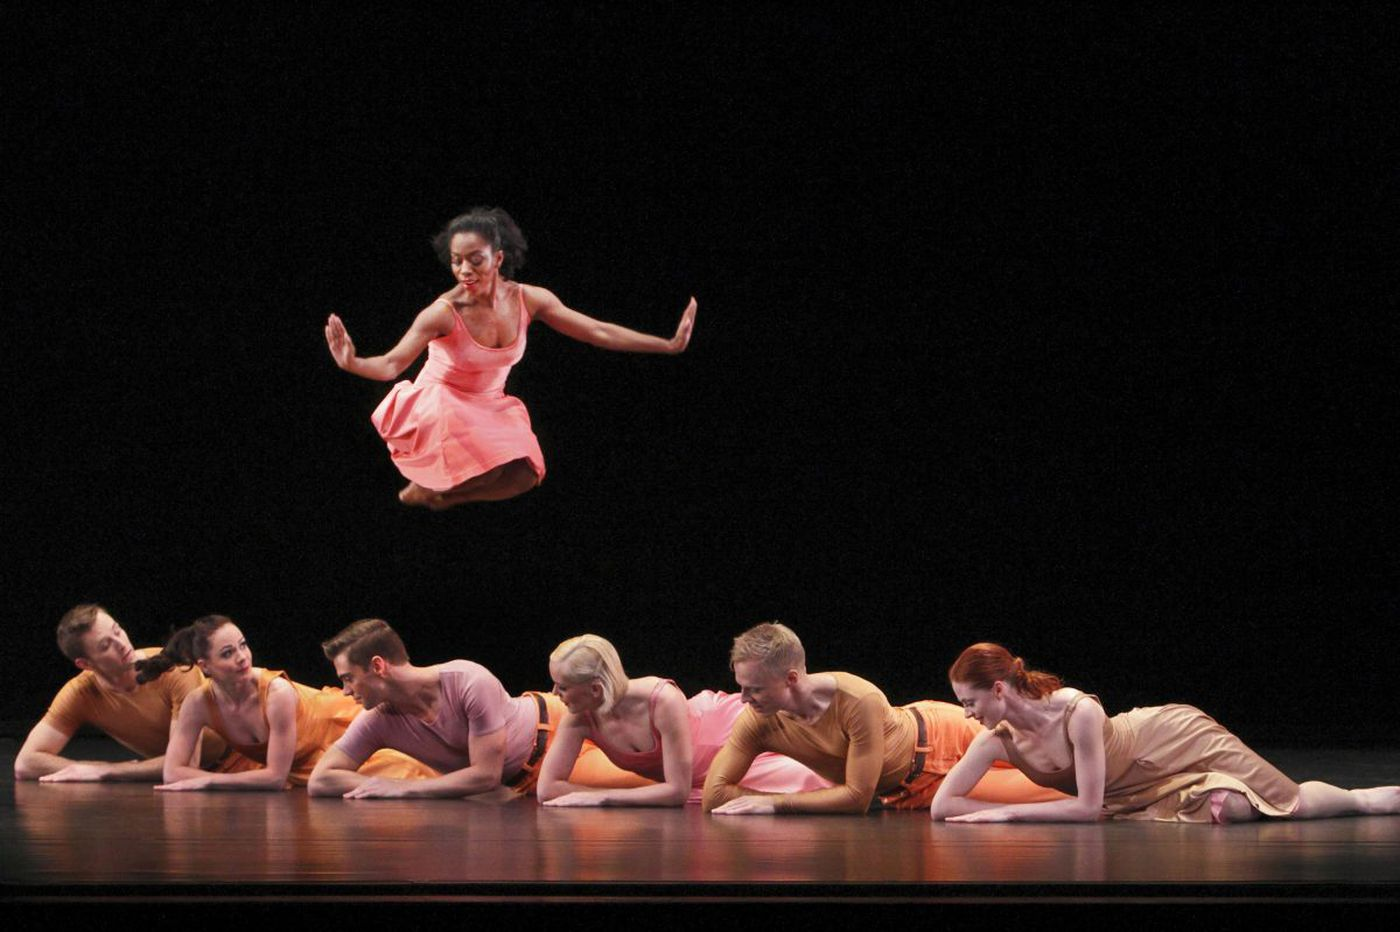 Paul Taylor Dance swings into Philly with a thrilling 'Esplanade' and two more classics